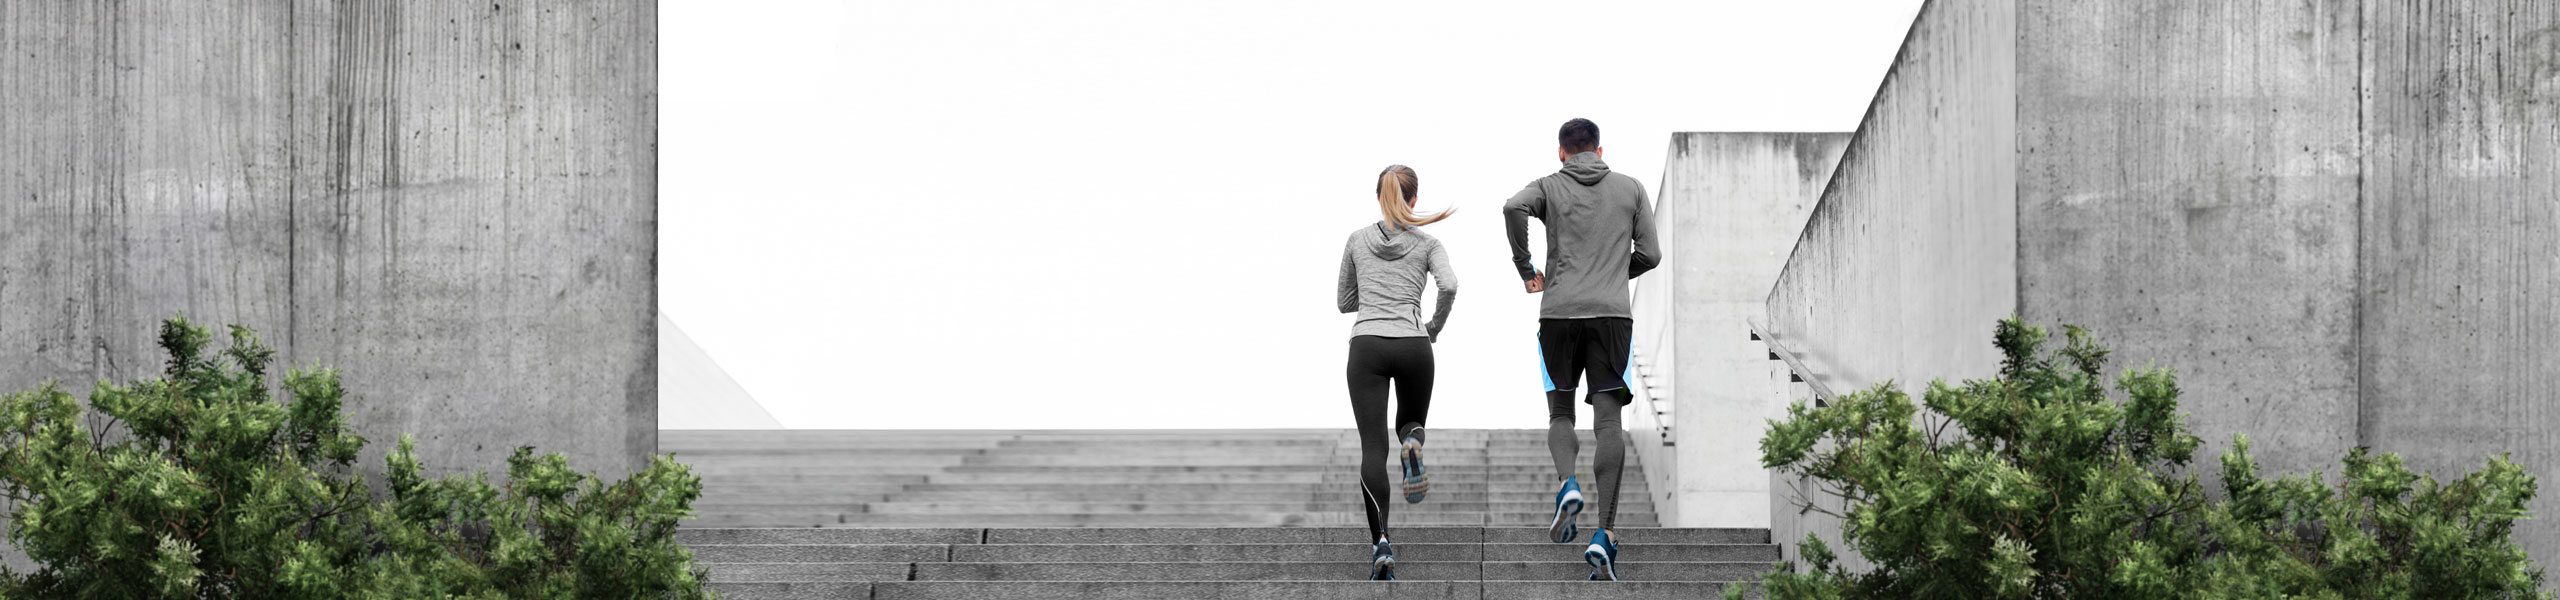 Strength Tek man and woman running on stairs, banner